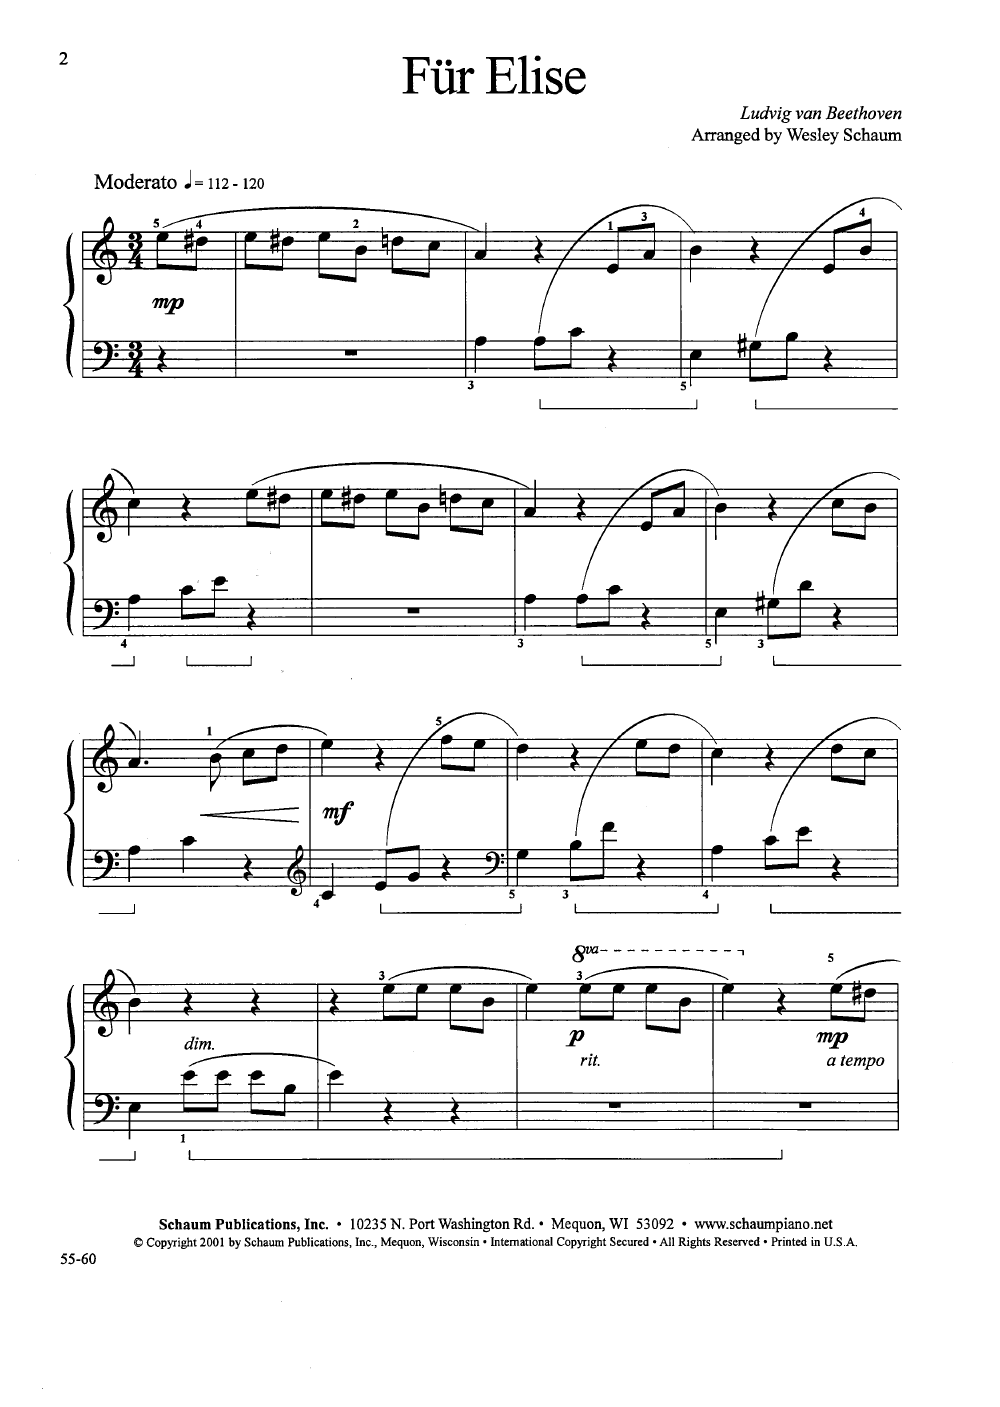 Fur Elise Piano Sheet Music Easy Kopepulsar